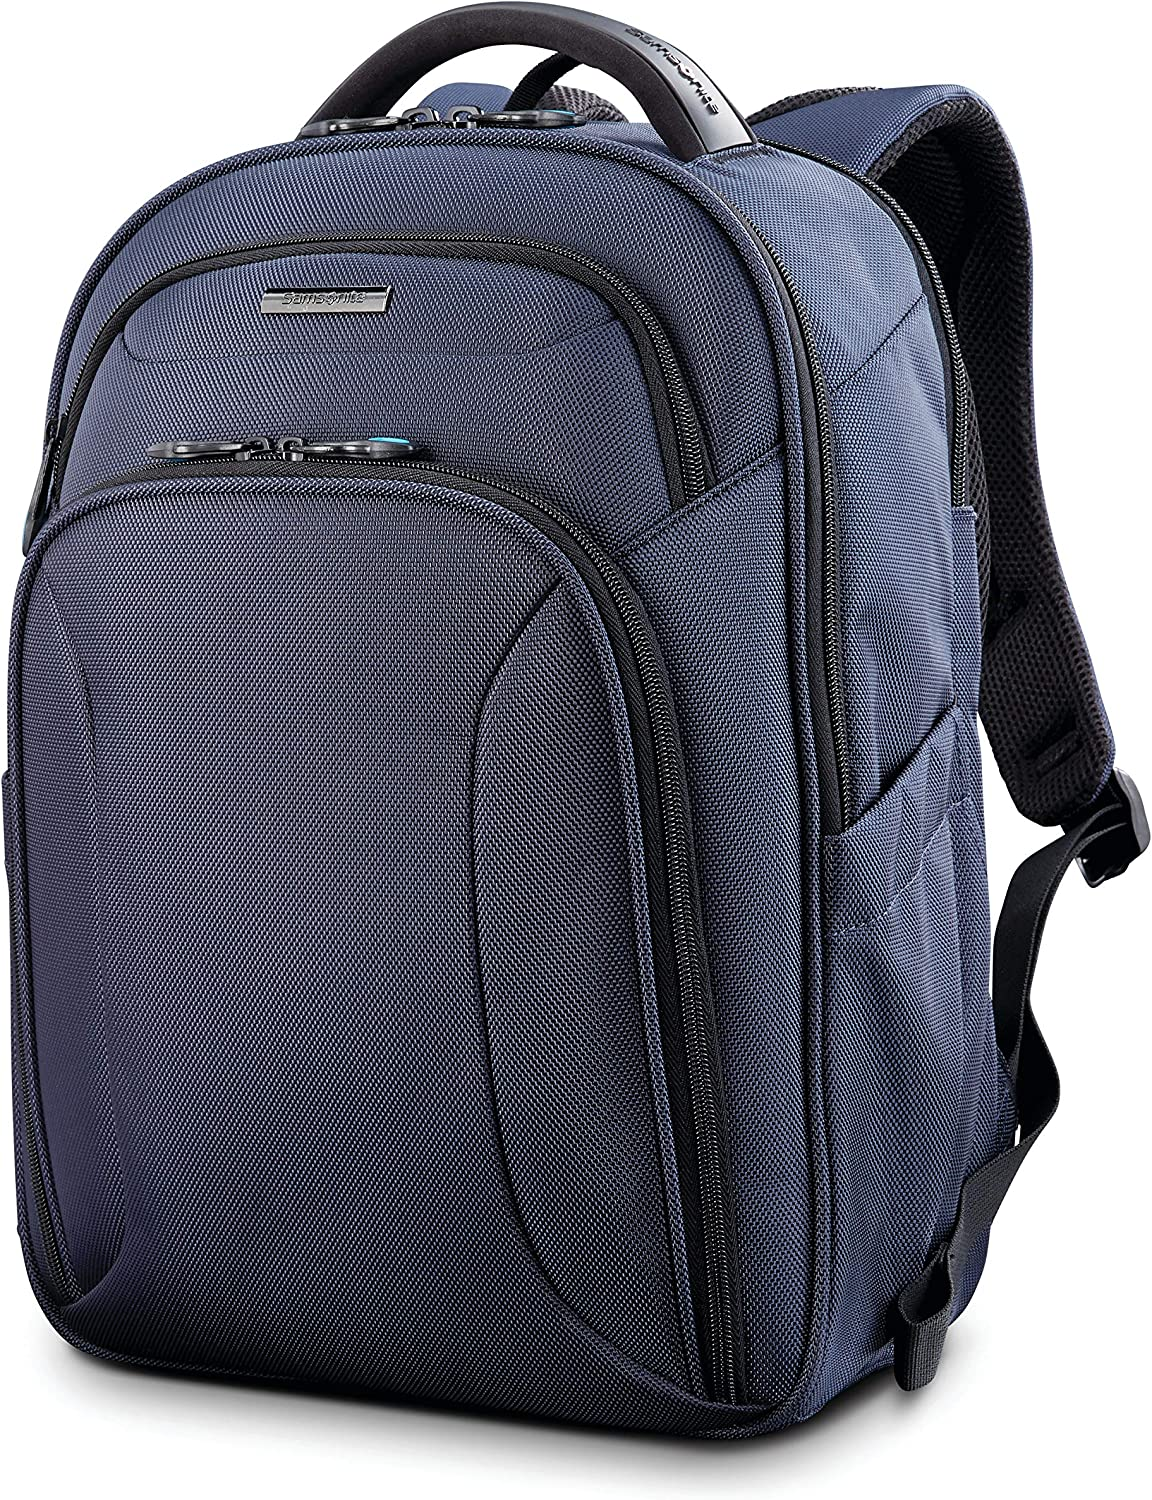 Samsonite Xenon 3.0 Checkpoint Friendly Backpack, Navy, Medium